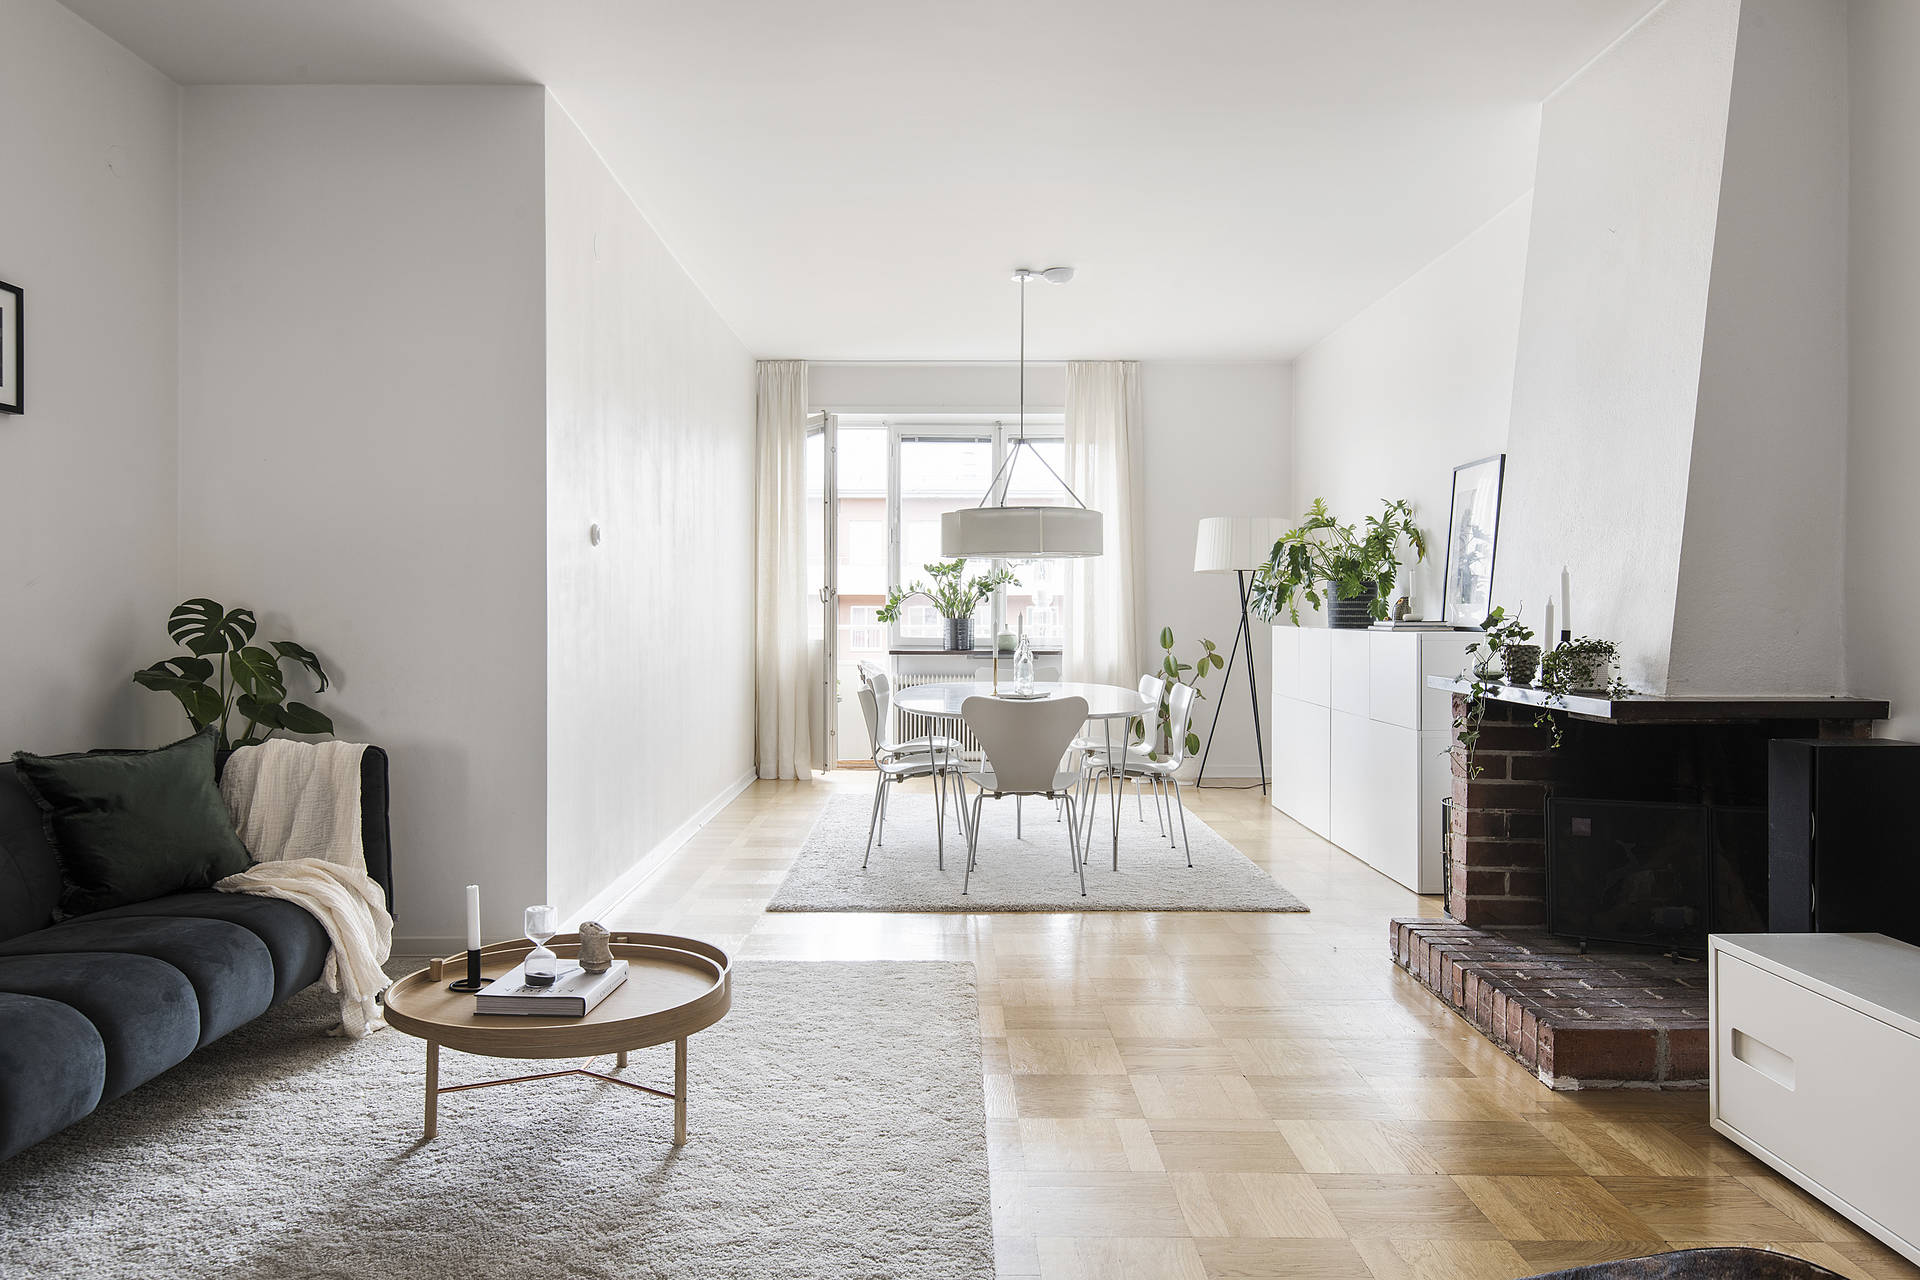 Even though the natural light is limited, the crisp white walls ensures the space feels airy and light.